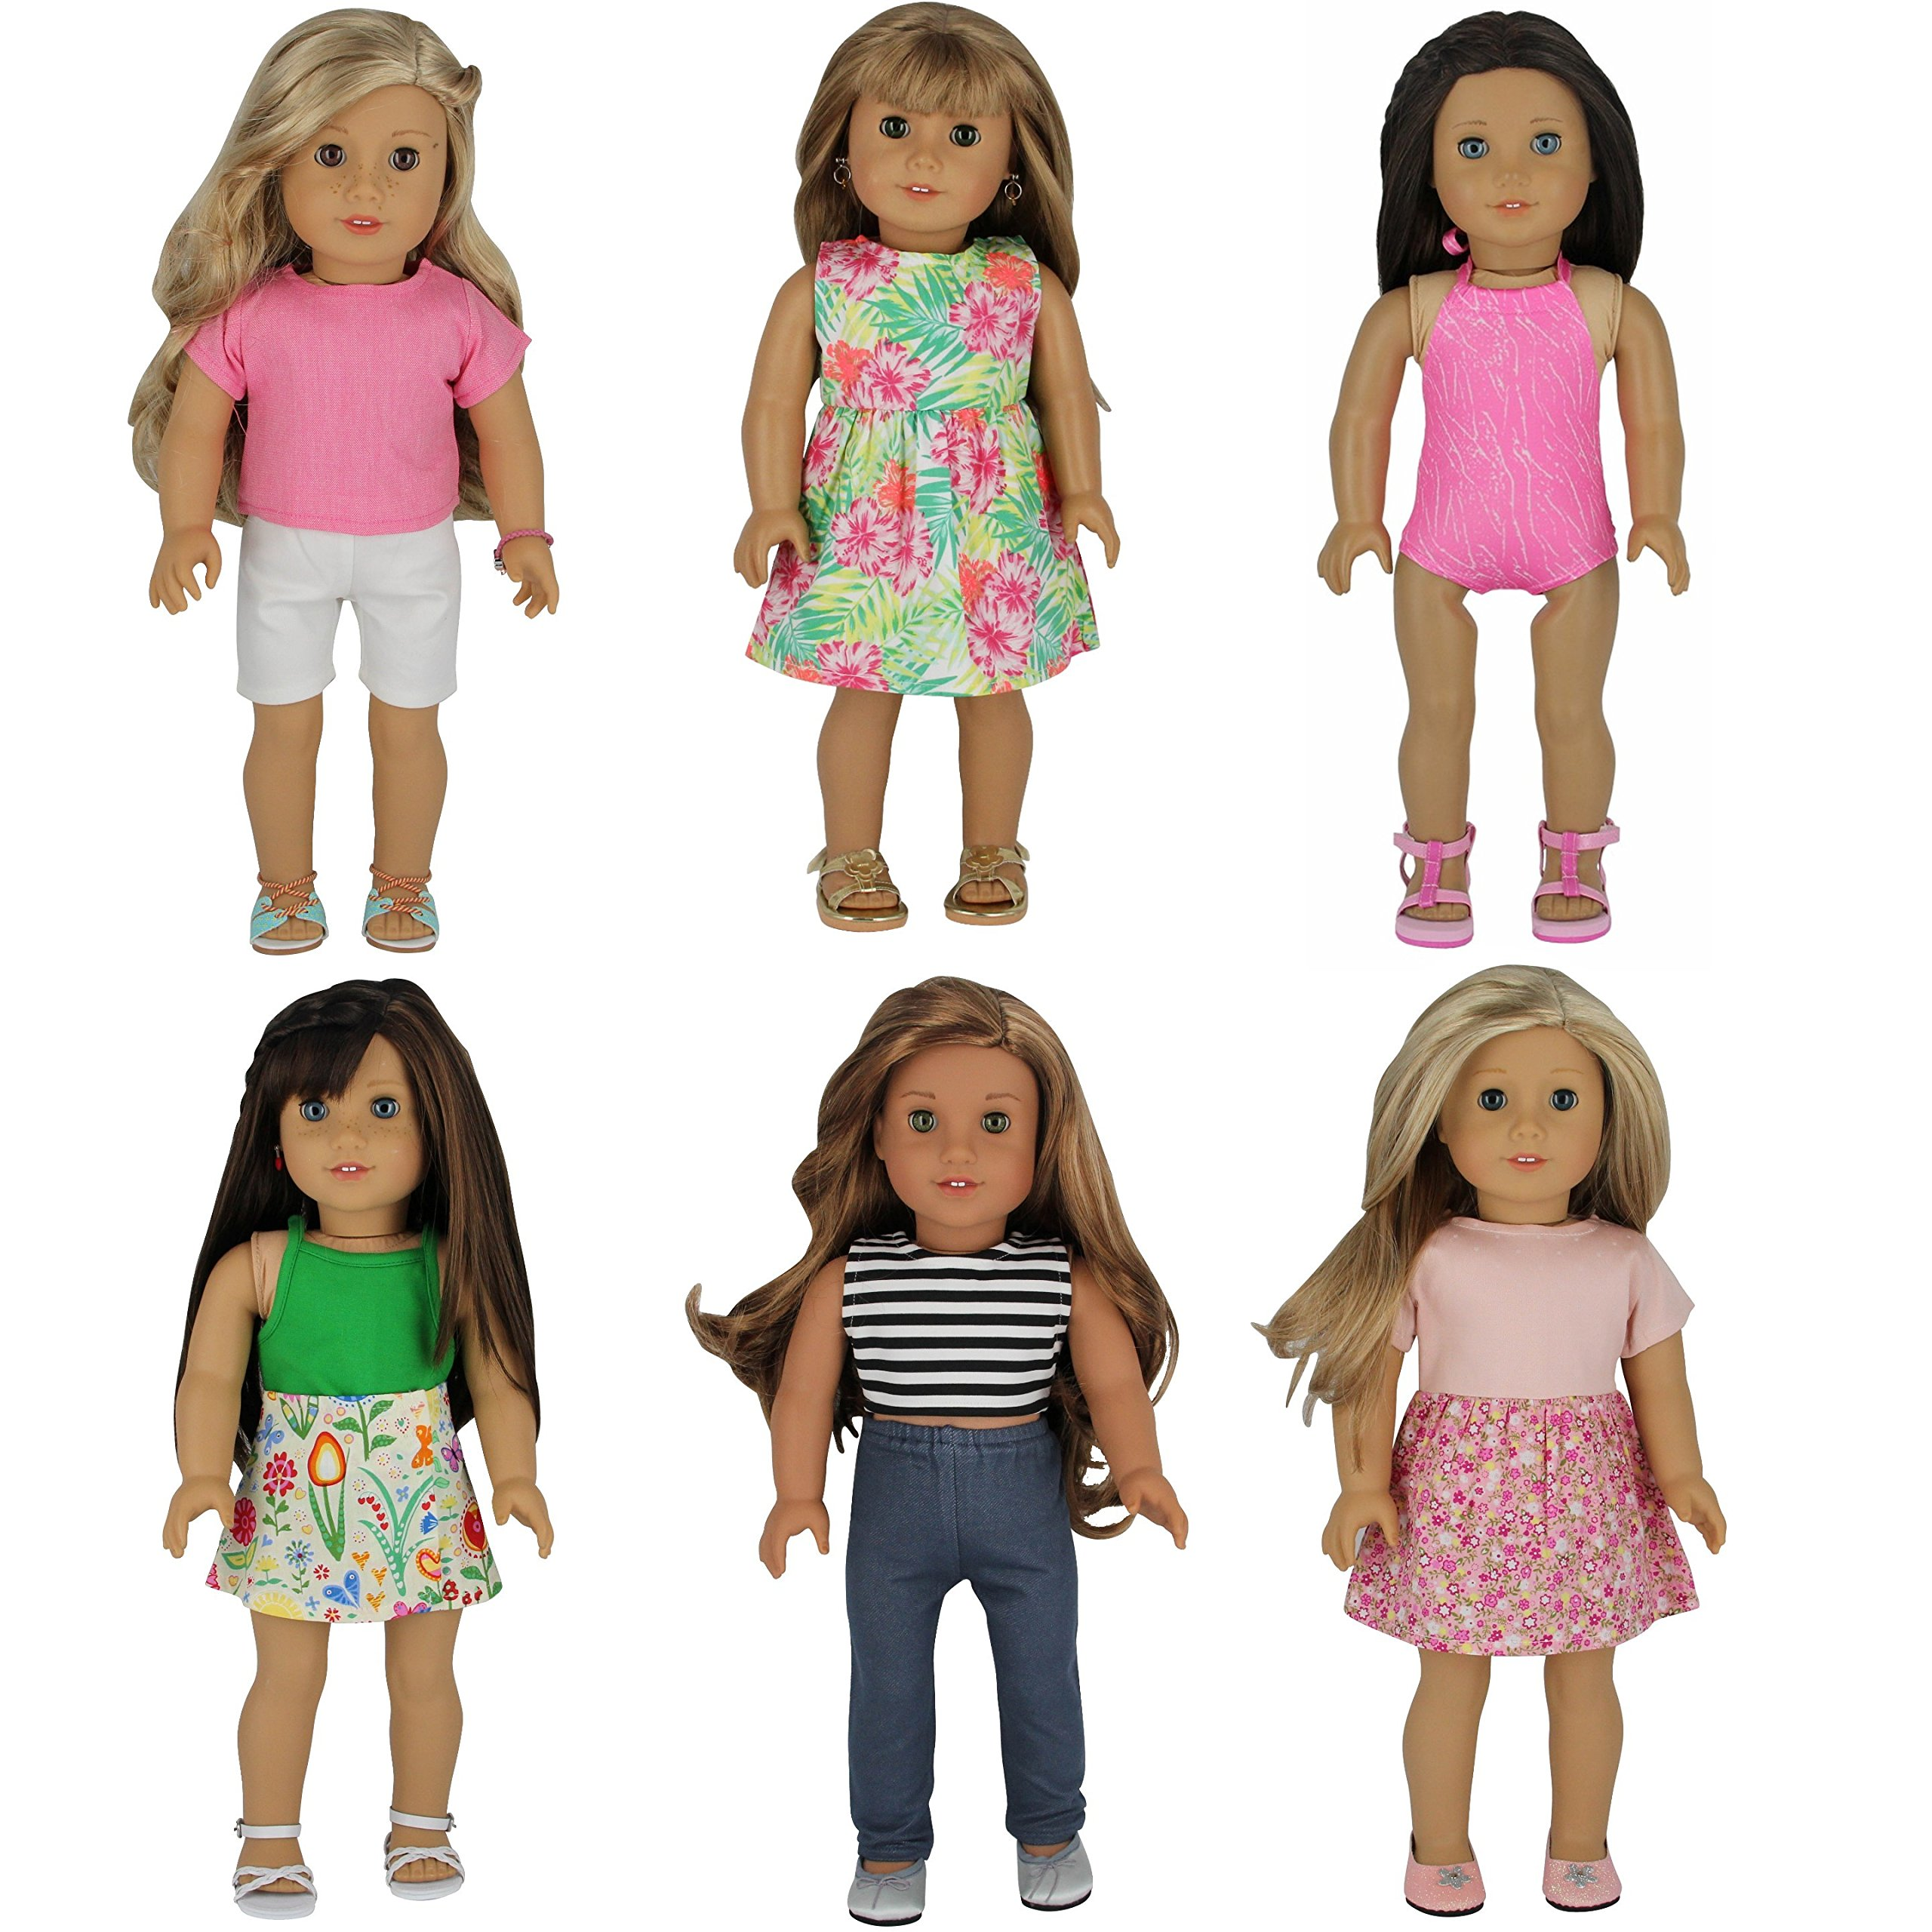 PZAS Toys American Girl Doll Clothes 18 inch - 6 Outfits Summer Doll Clothes for 18 inch Dolls